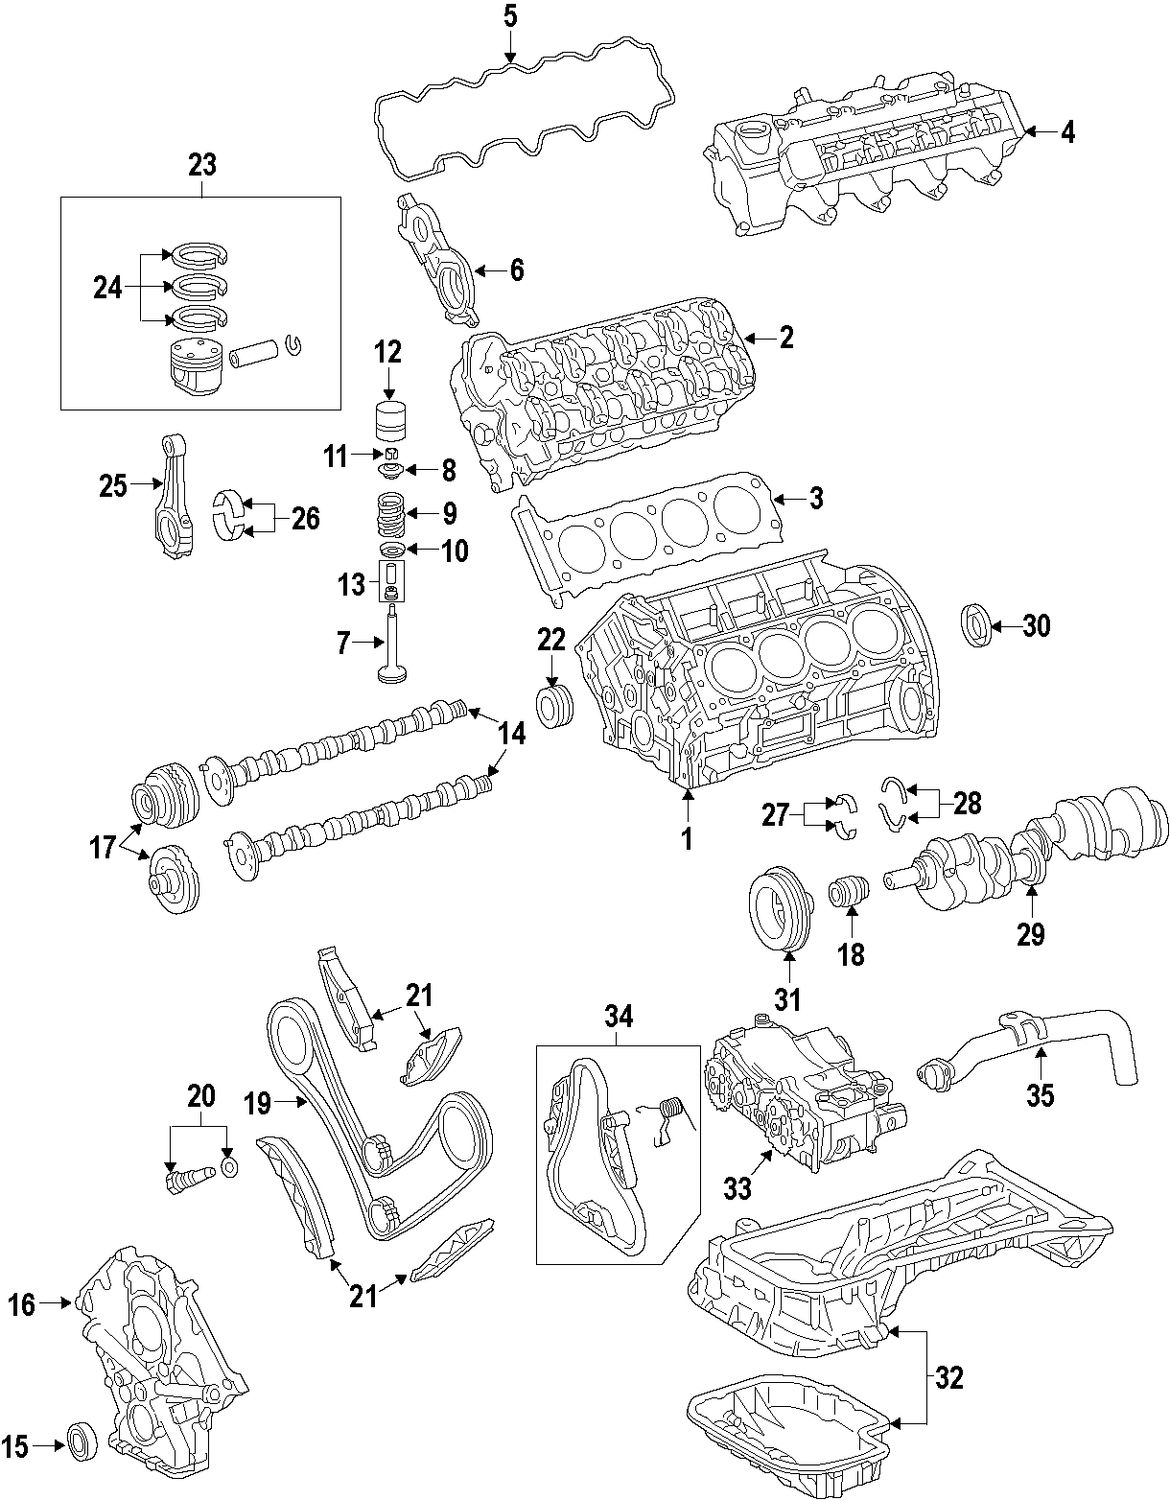 Sel Engine Parts Diagram, Sel, Free Engine Image For User